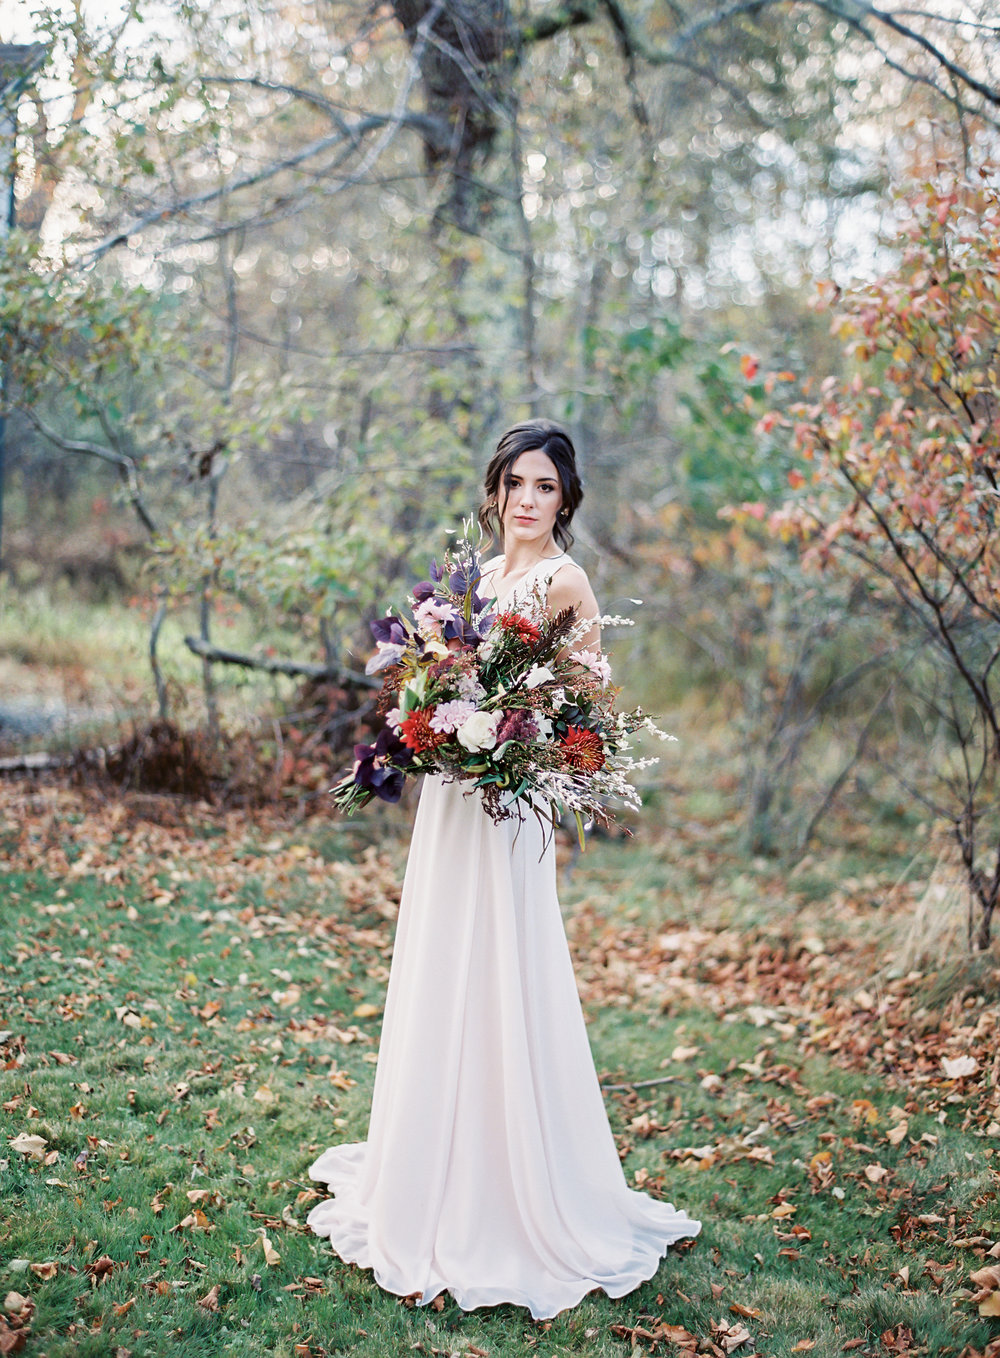 Jacqueline Anne Photography - Forest Editorial - Autumn editorial ON FILM-42.jpg